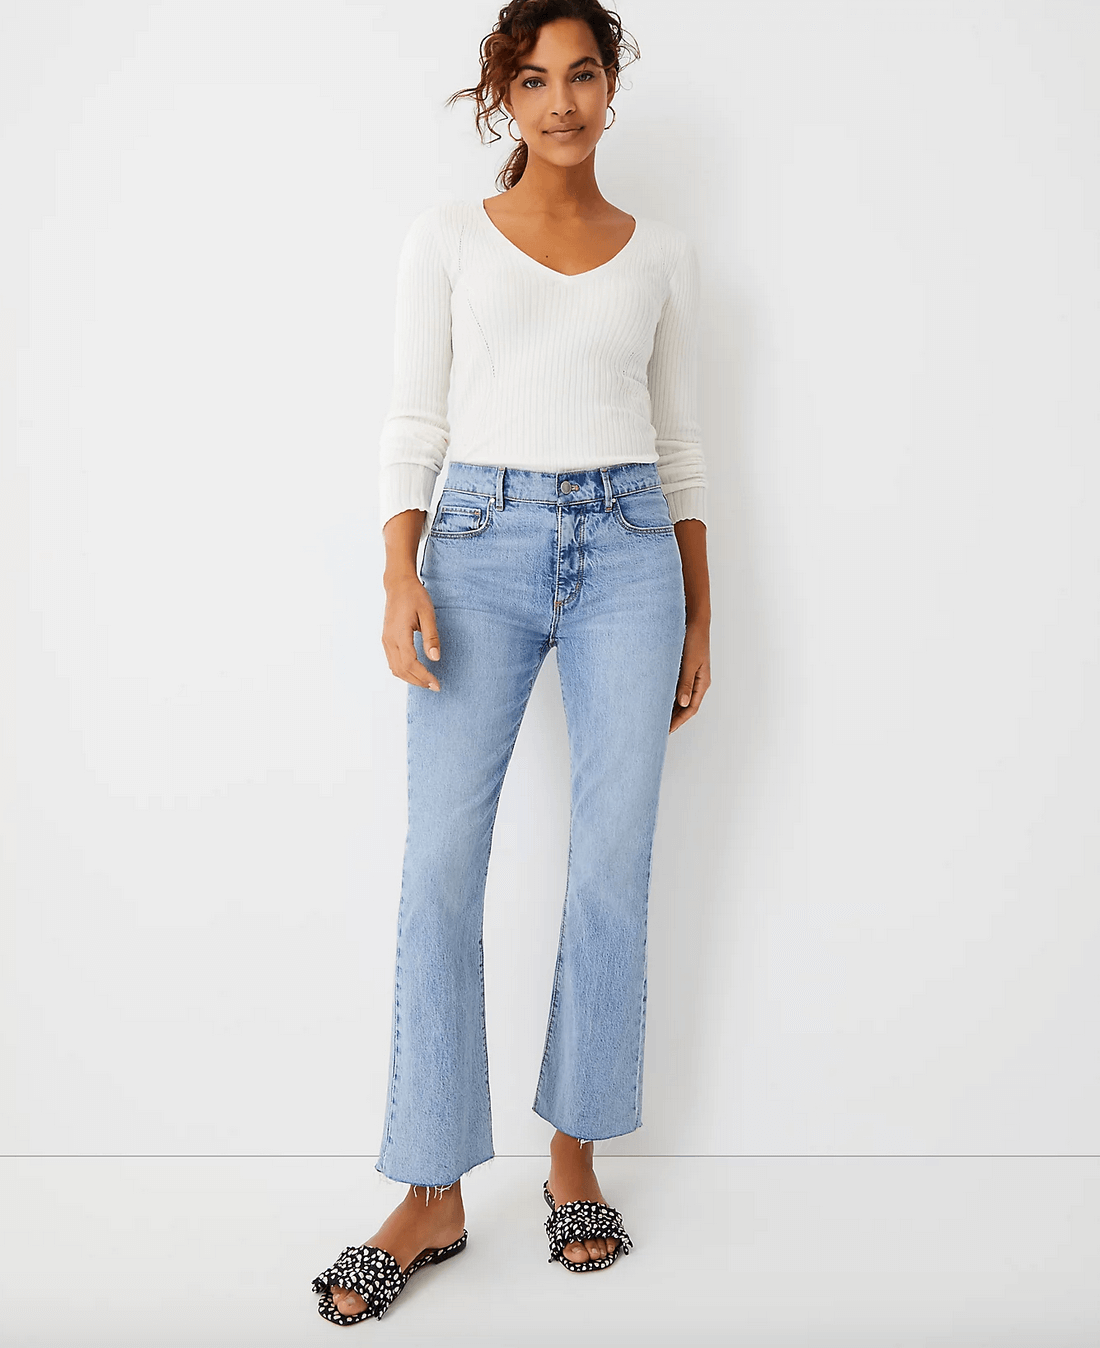 Cropped flares from Ann Taylor